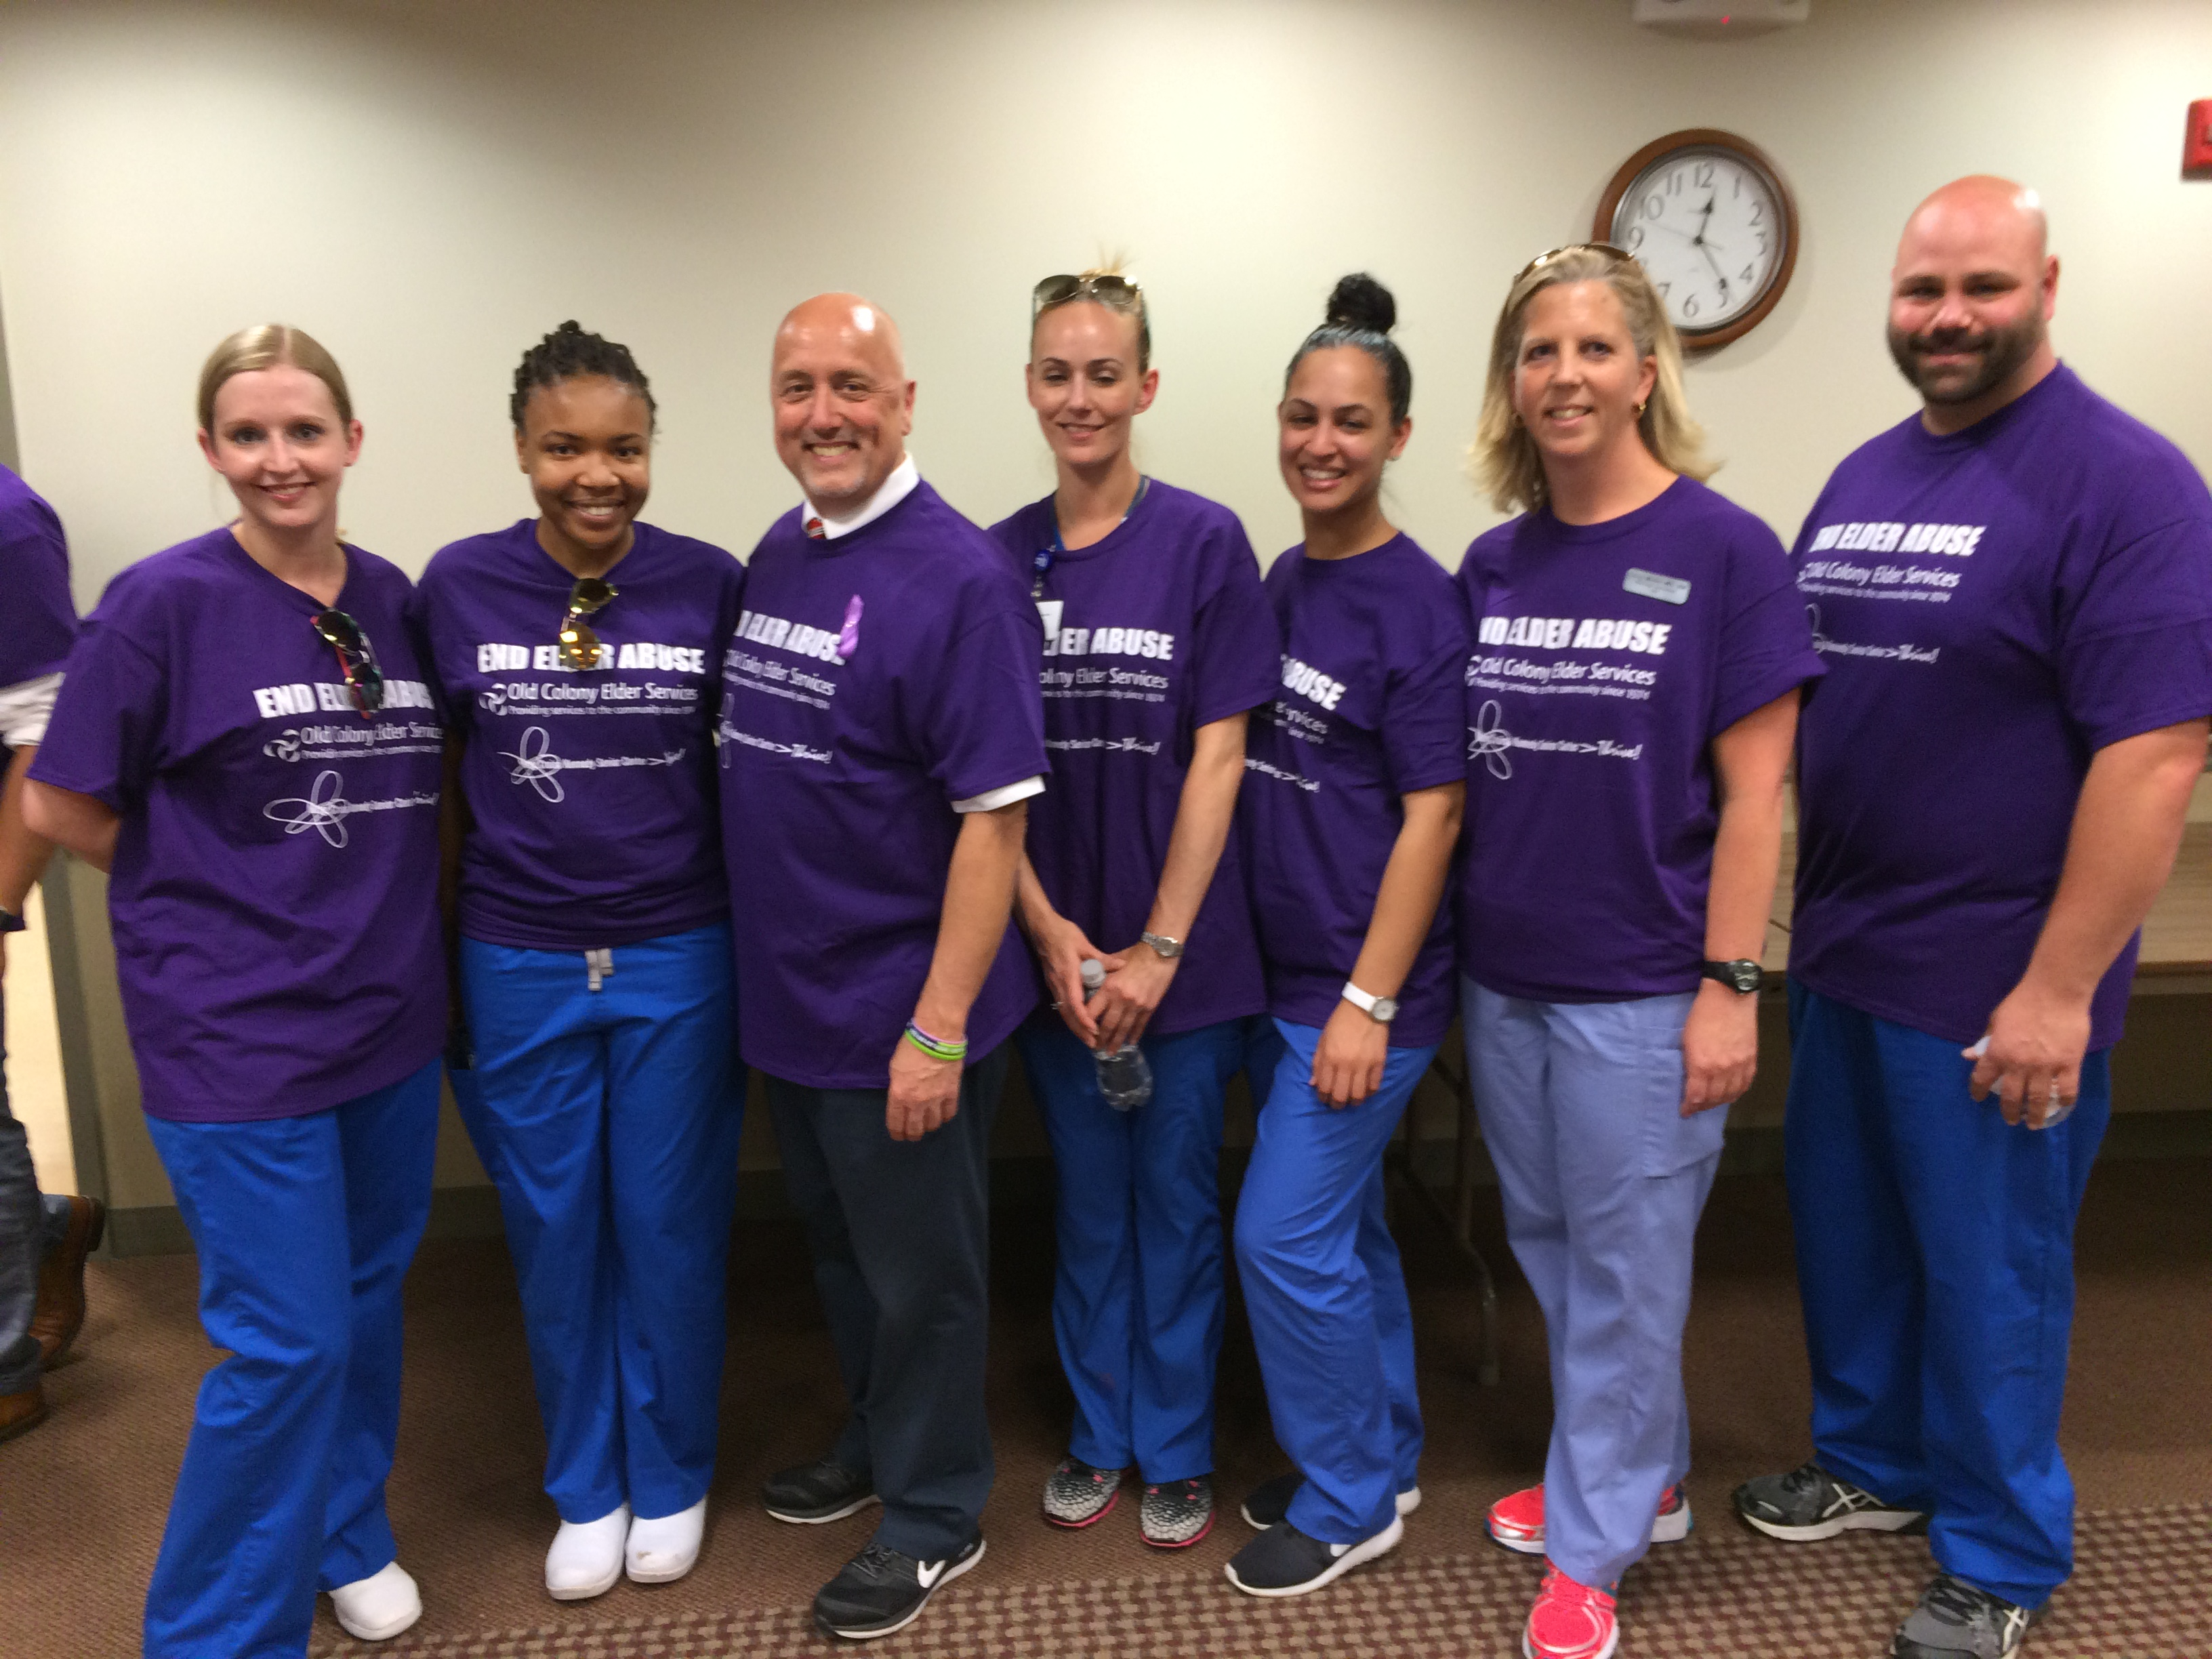 STI Nurses Participate in March to End Elder Abuse in Brockton